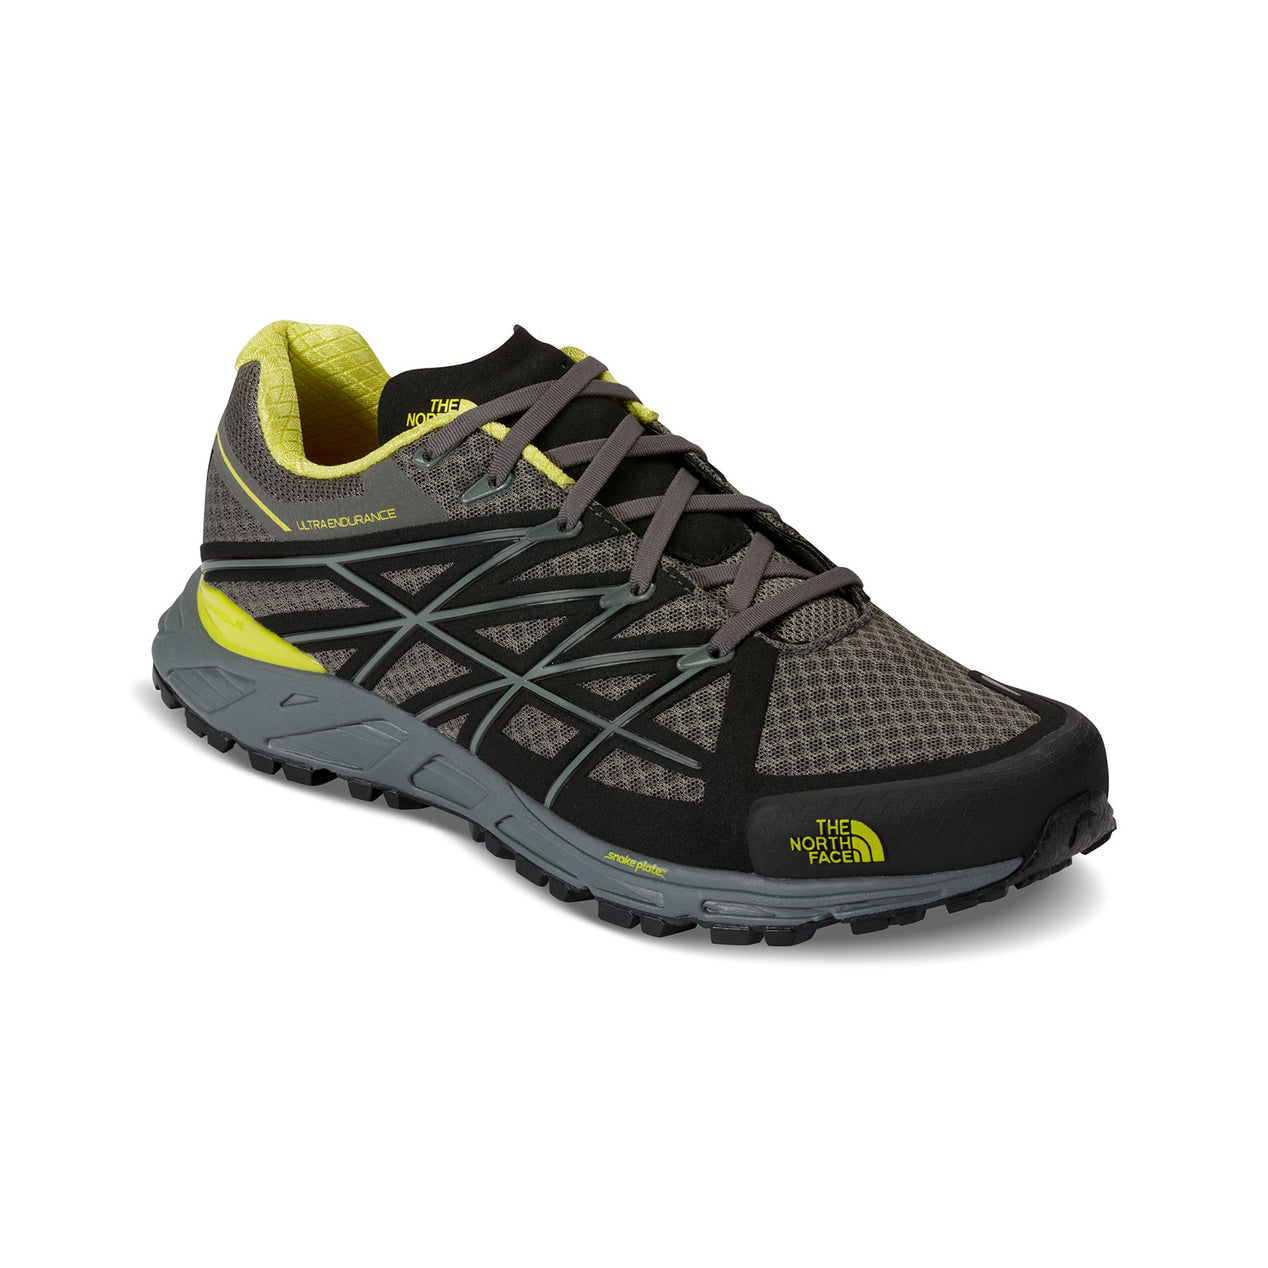 702dce561 The North Face Men's Ultra Endurance